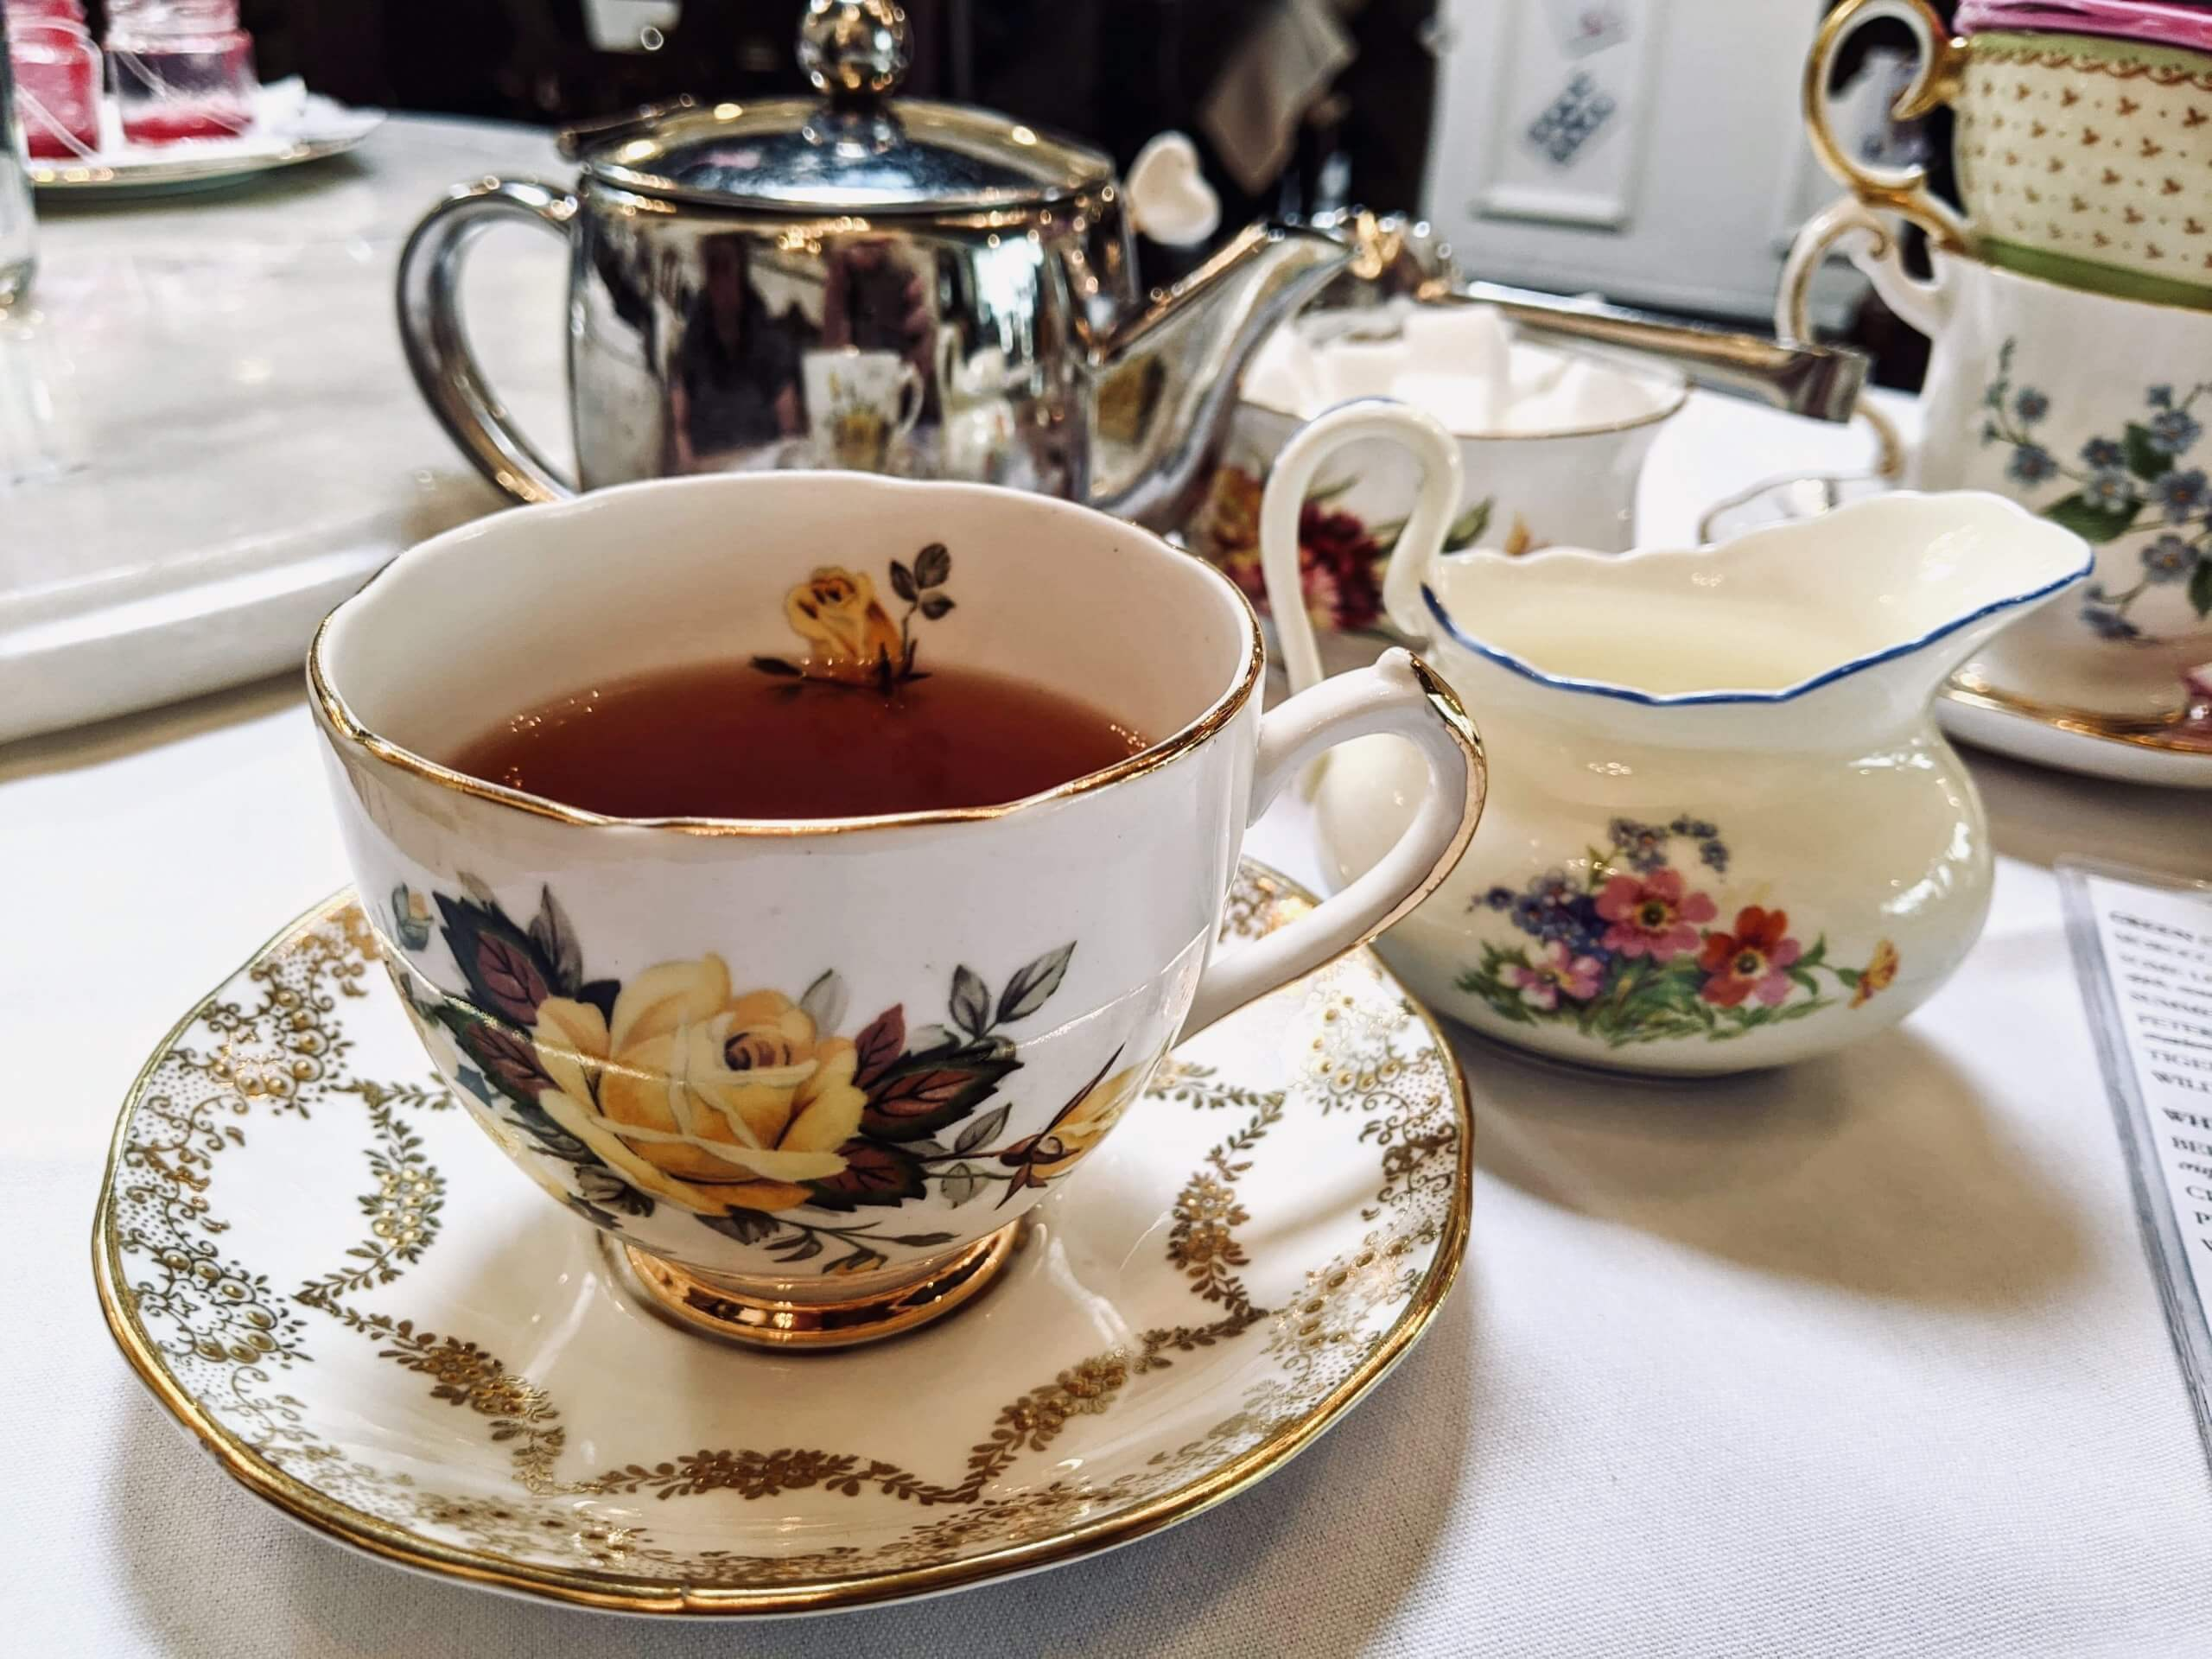 Tea cup, filled with tea, with the pot and sugar, milk, and honey in the background